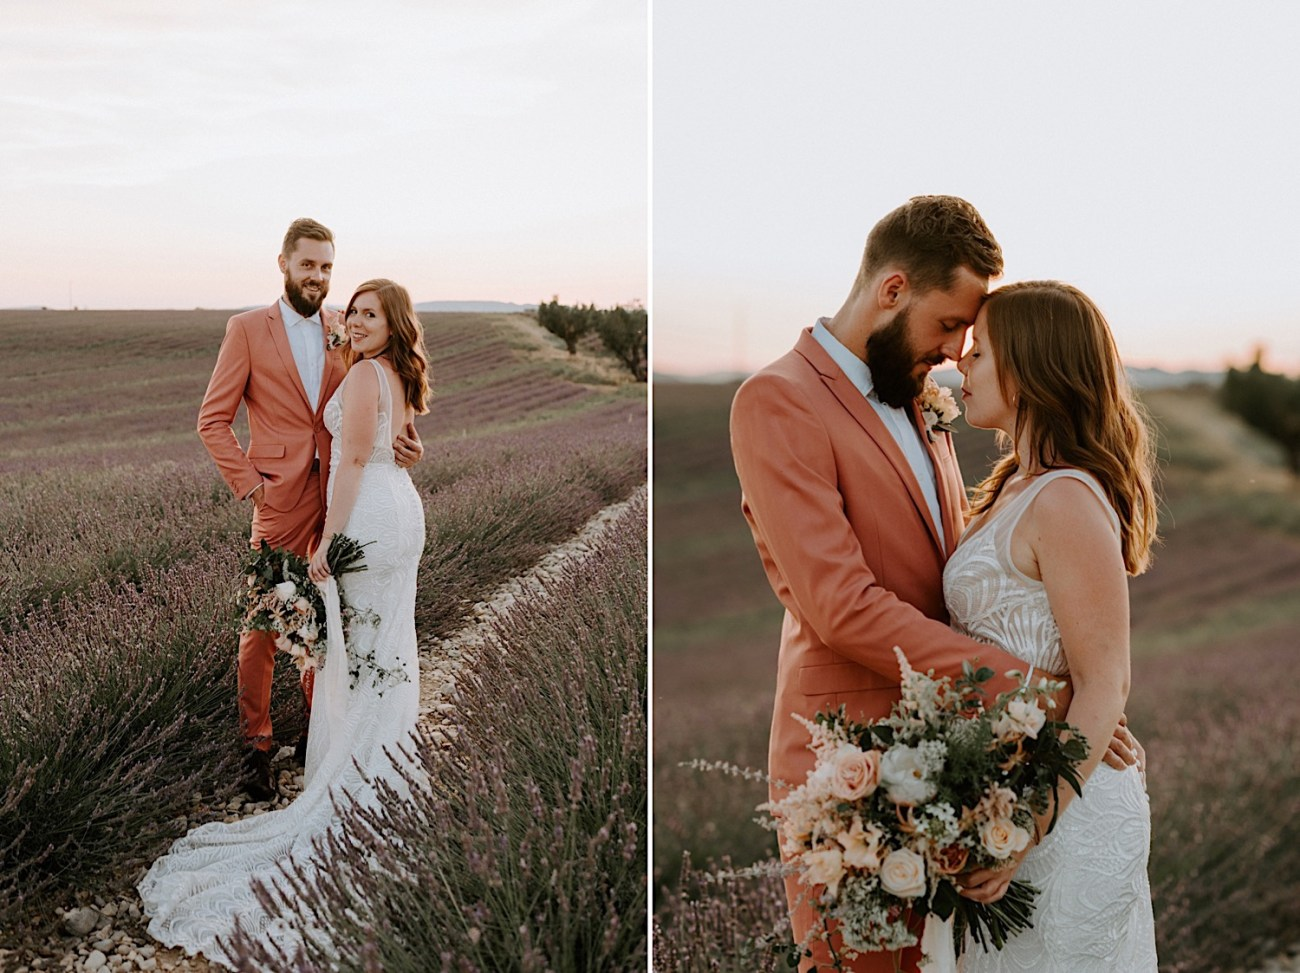 Valensole Wedding Photos Lavender Field Wedding Provence Wedding French Wedding Photographer Destination Wedding France Anais Possamai Photography 04